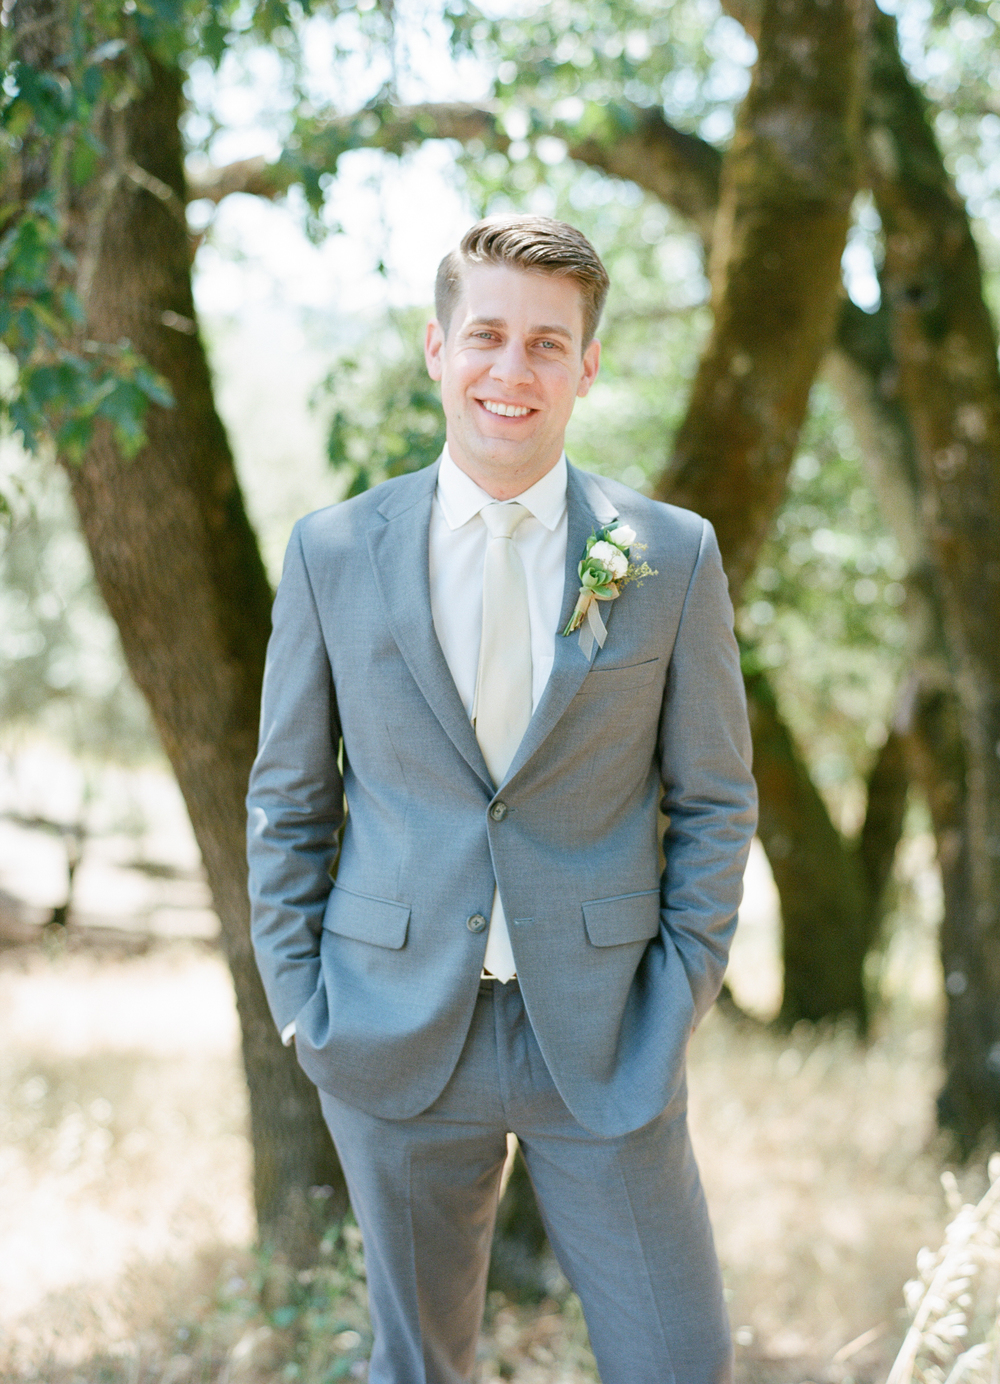 Sylvie-Gil-film-destination-photography-Kunde-winery-Napa-Valley-elegant-shabby-chic-groom-grey-suit-boutonniere